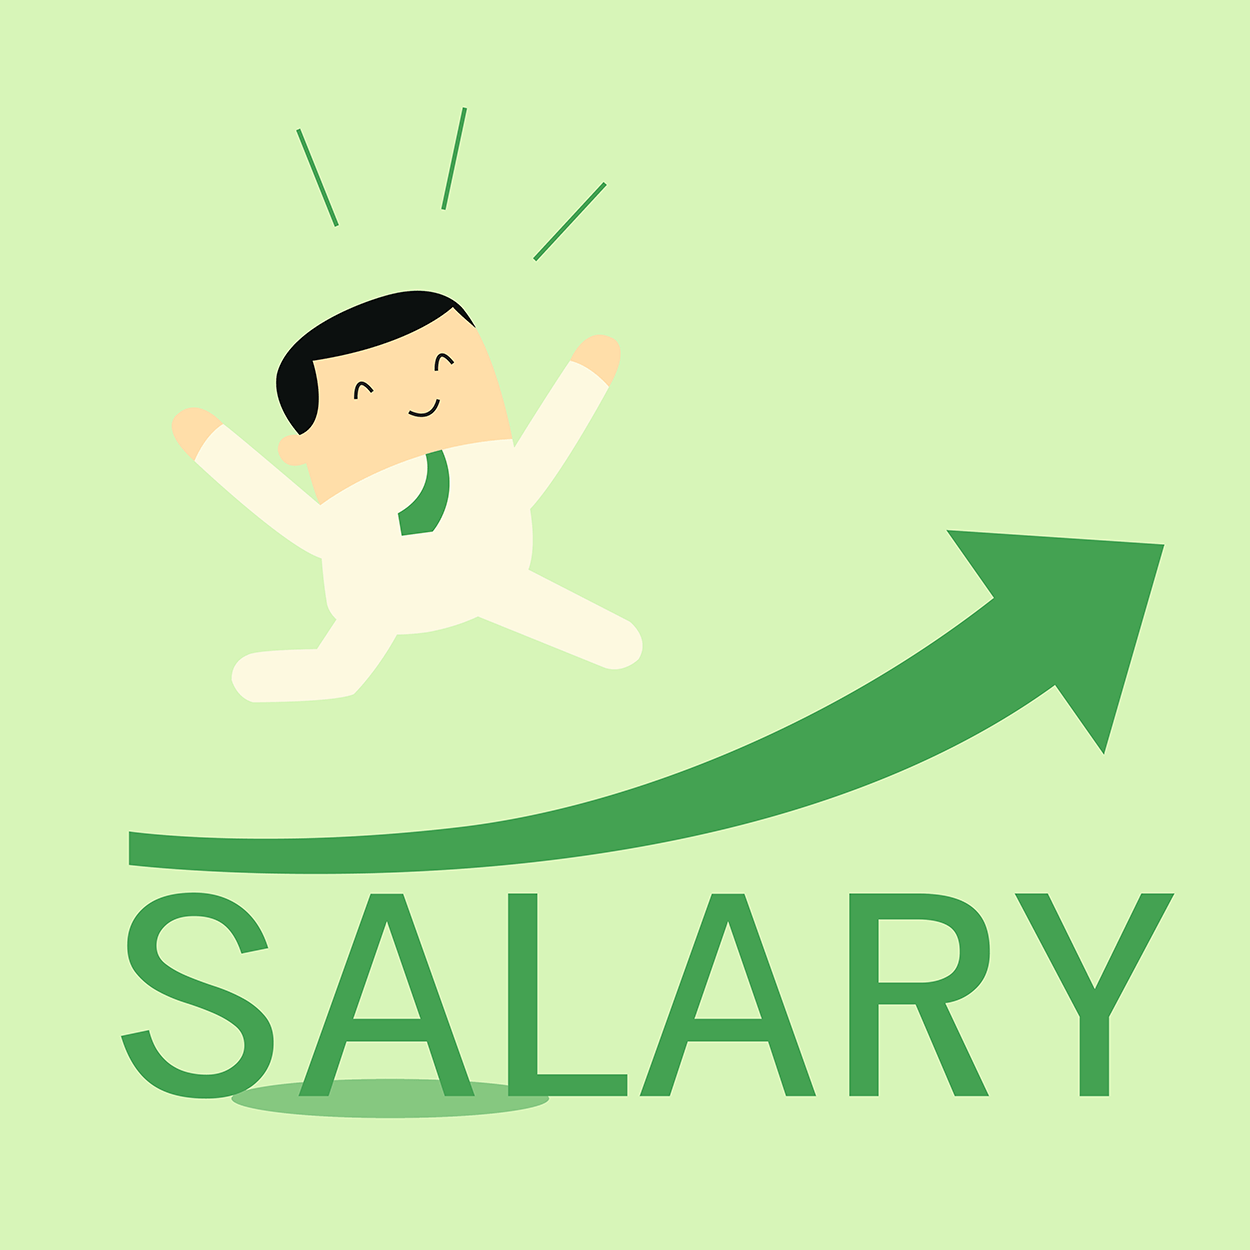 Annual Salary To Hourly Income Conversion Calculator